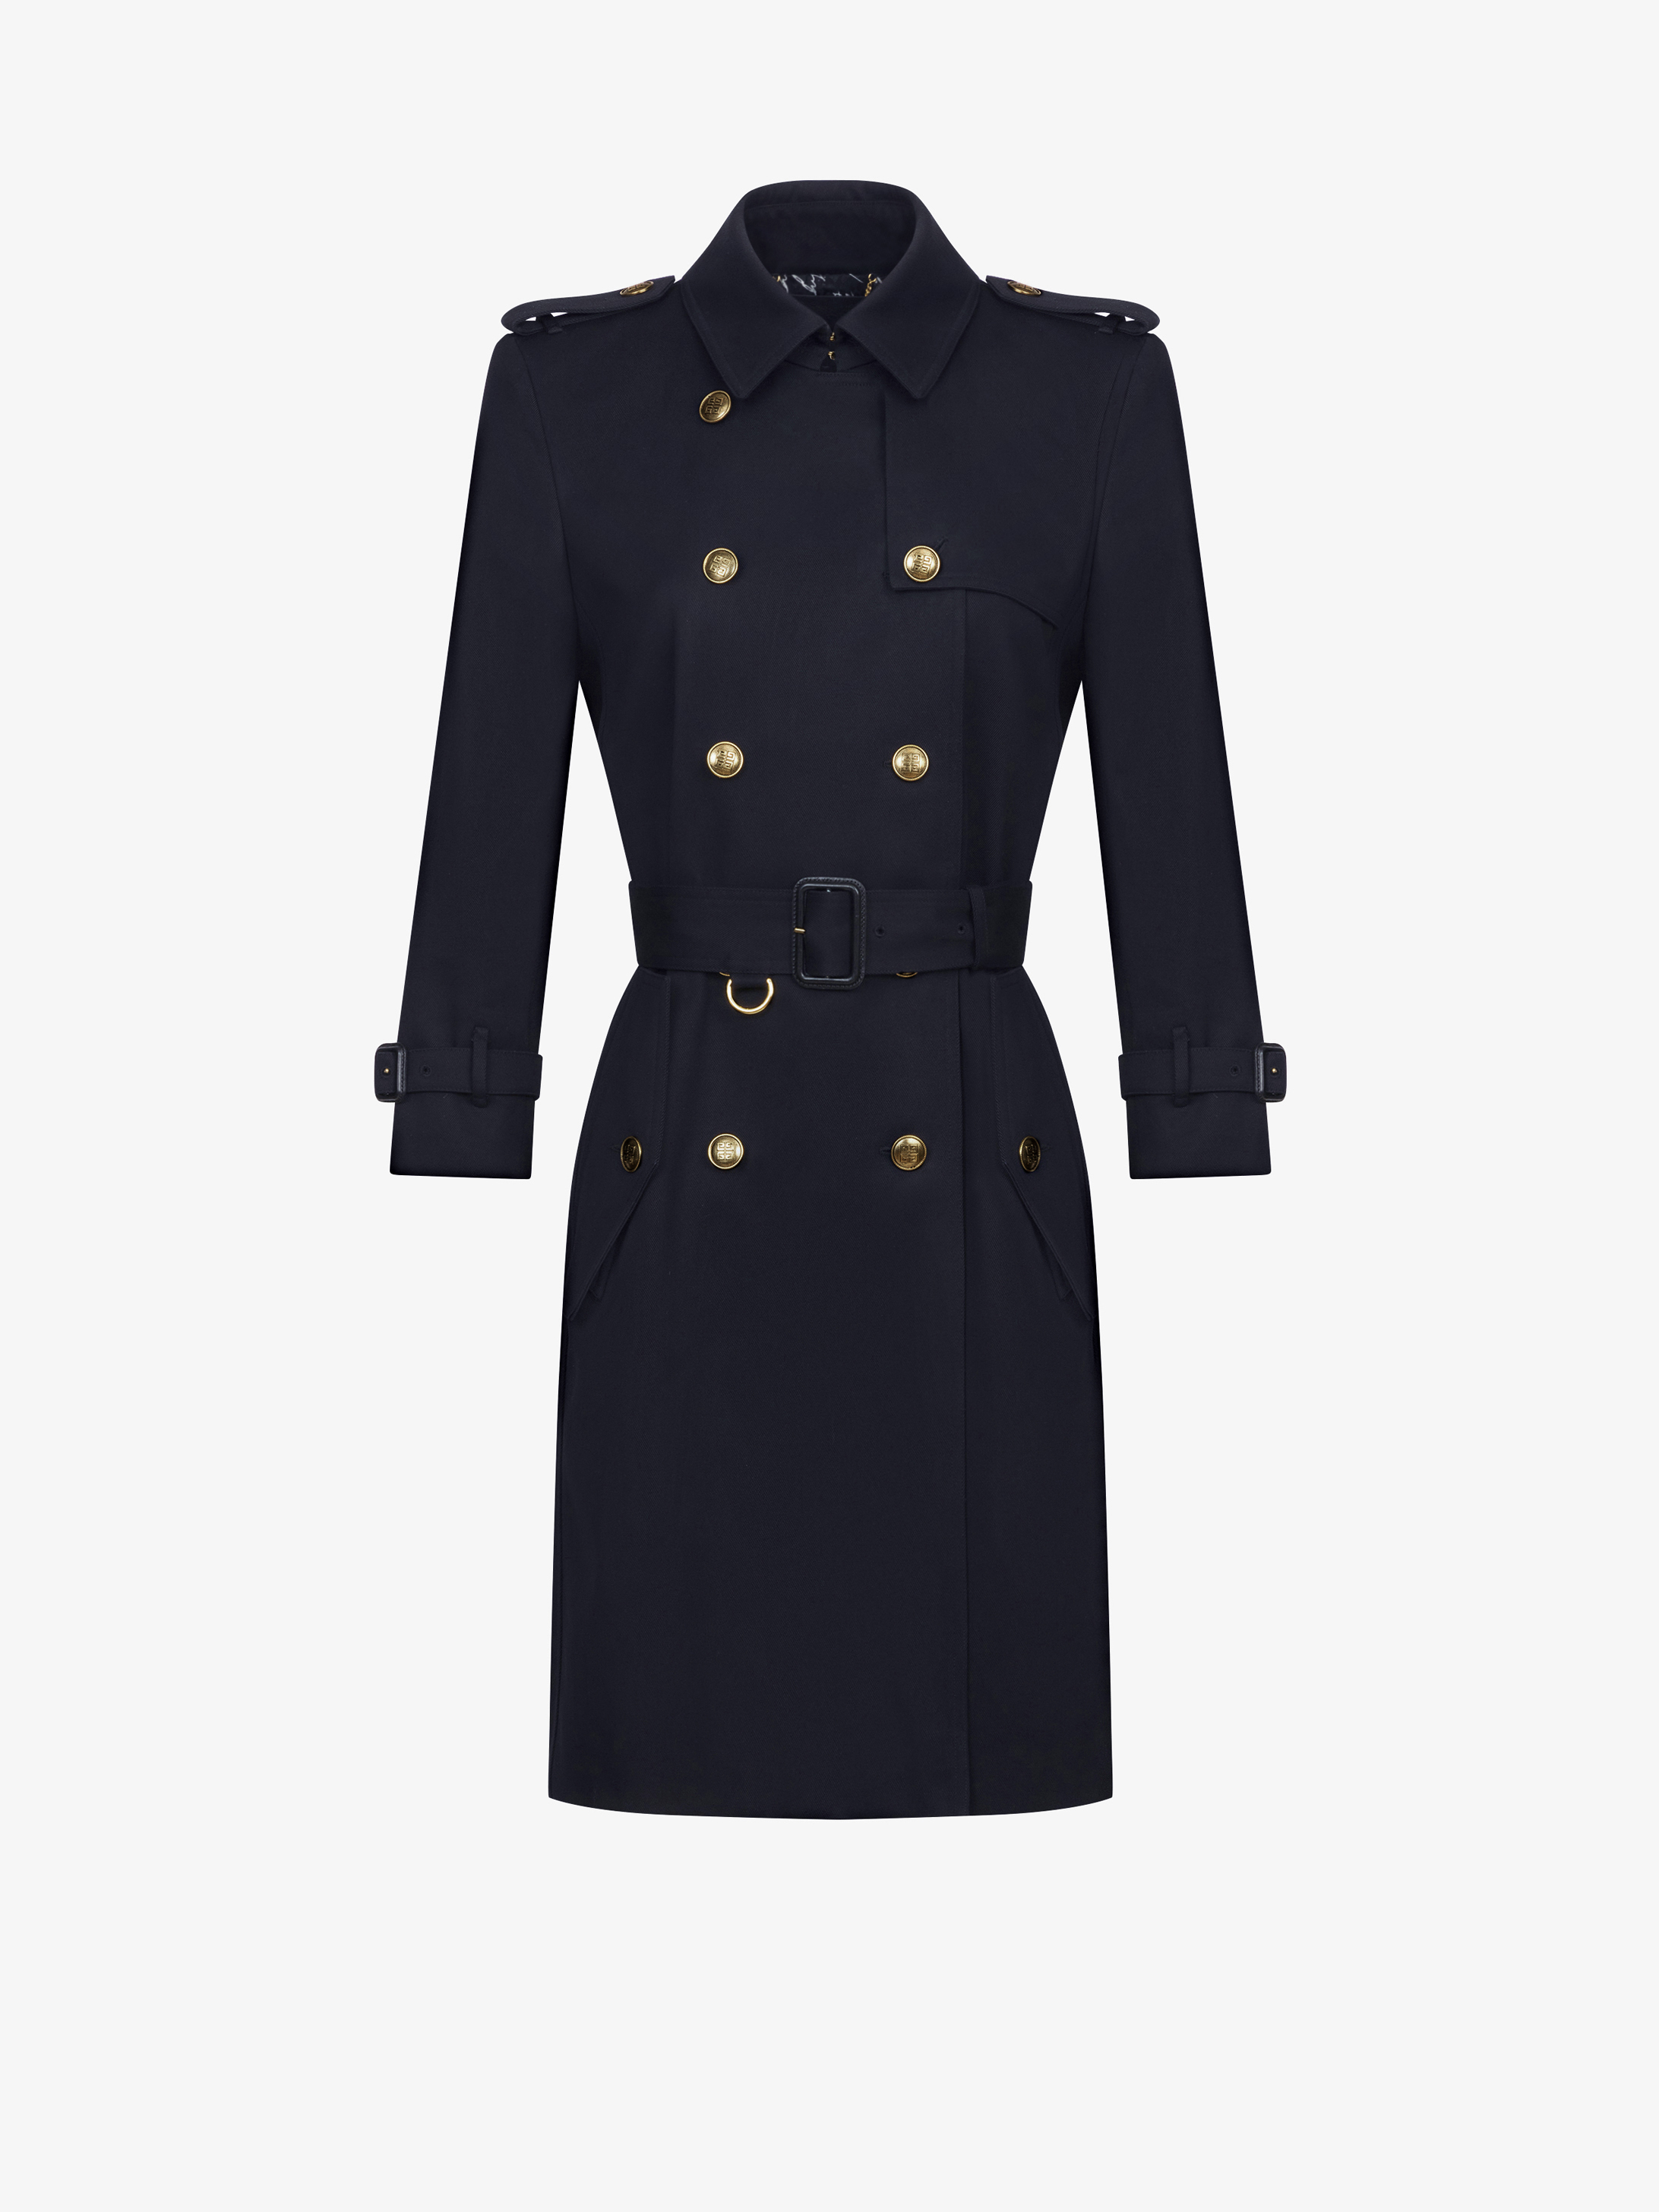 double breasted trench coat - Black Givenchy Cheap Shop Authentic Cheap Price Sale Best T0KBx93